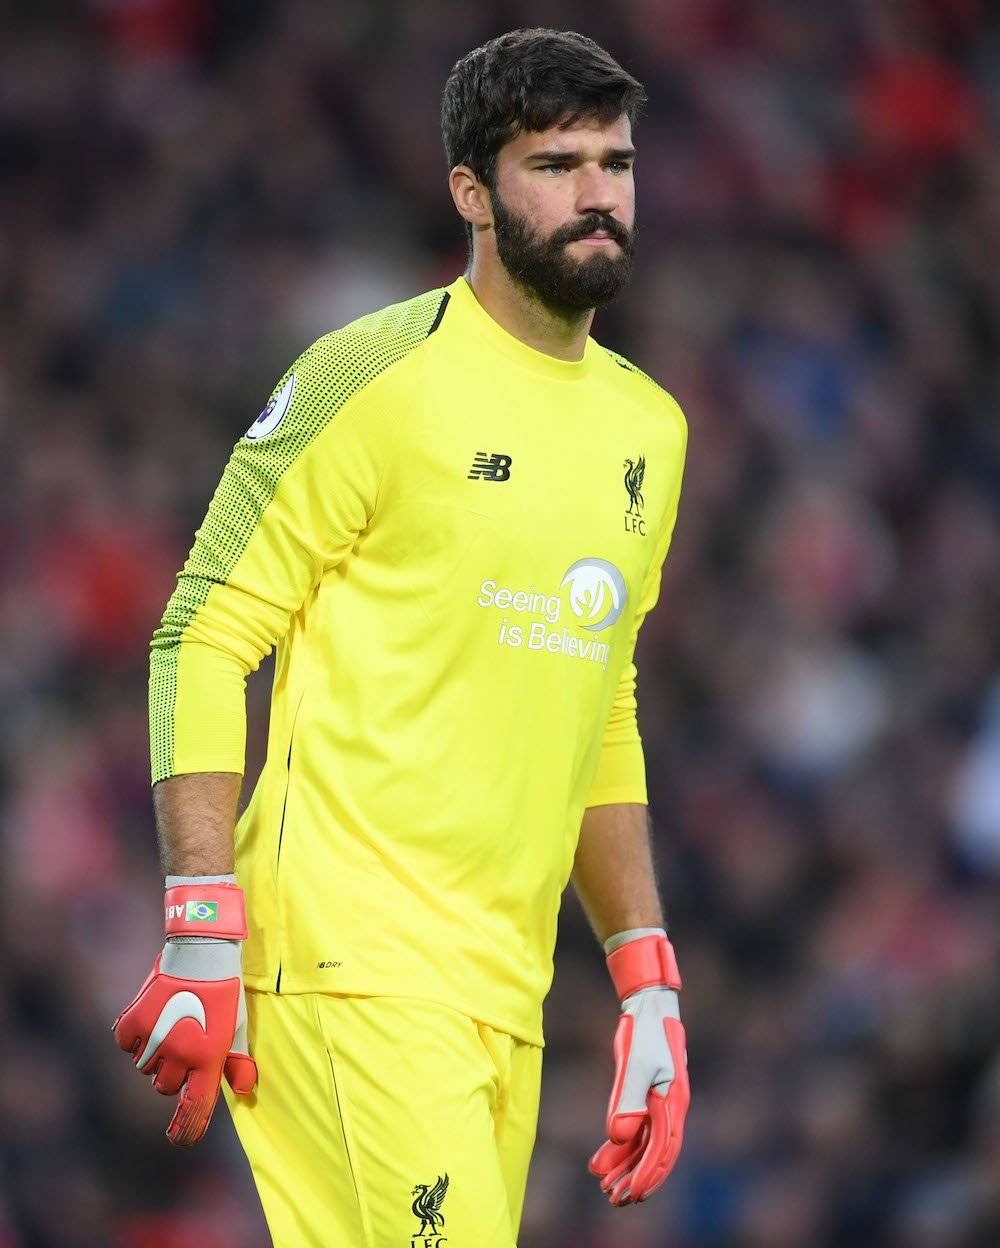 Alisson Becker / getty Images